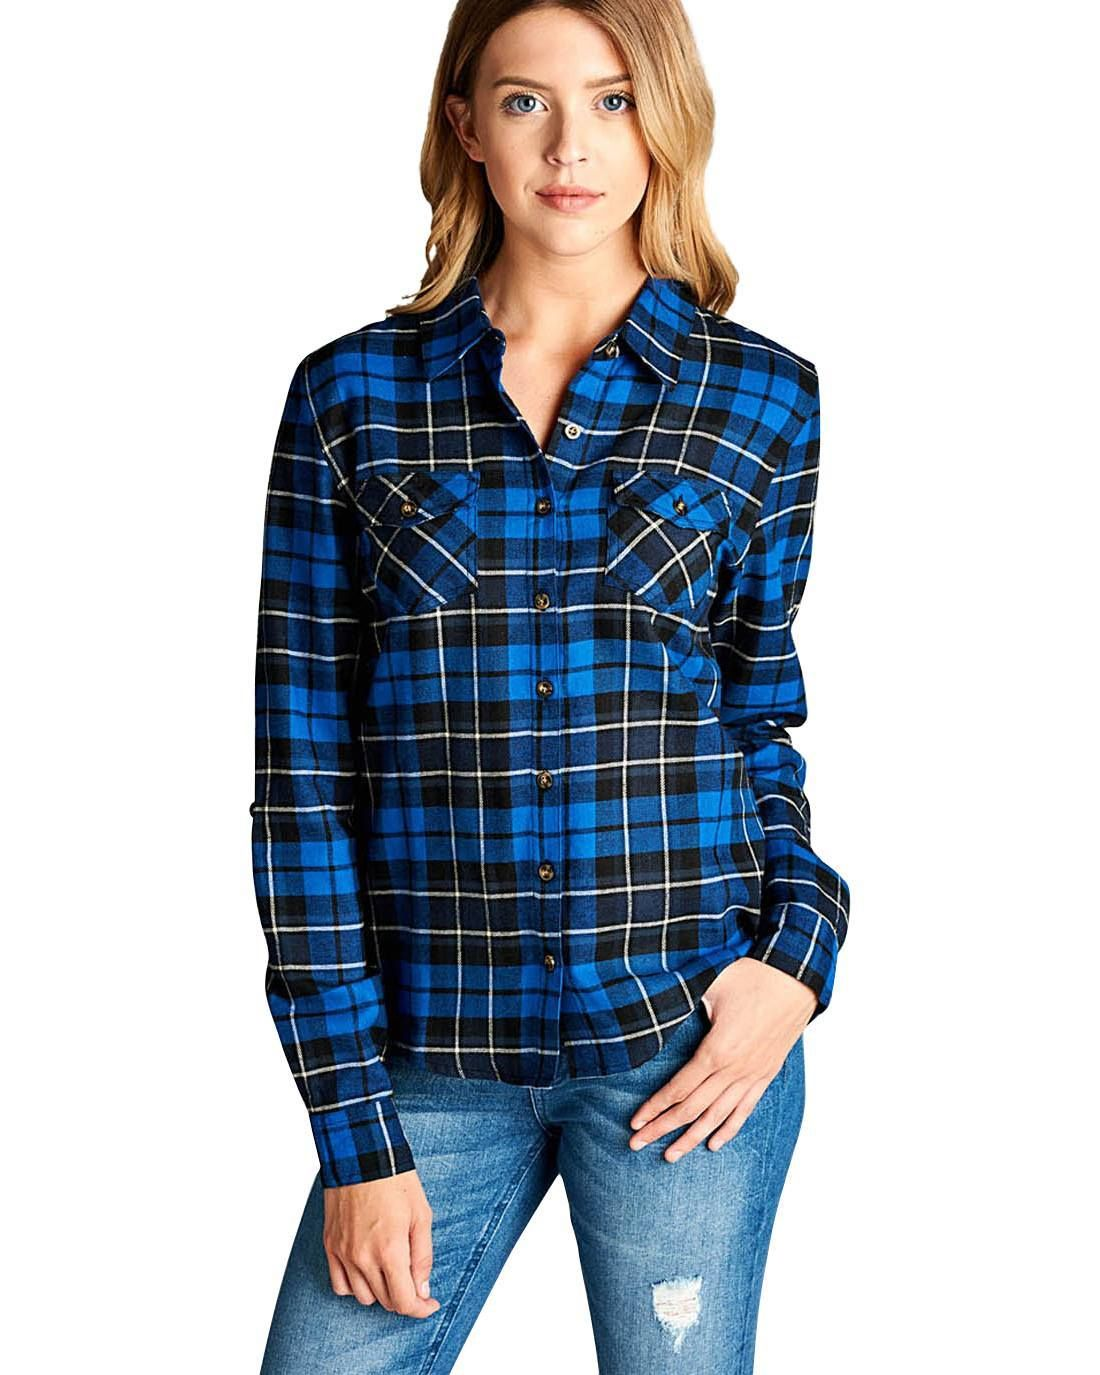 Flannel shirt jeans  Blue Plaid Collar Shirt  Products  Pinterest  Collar shirts and